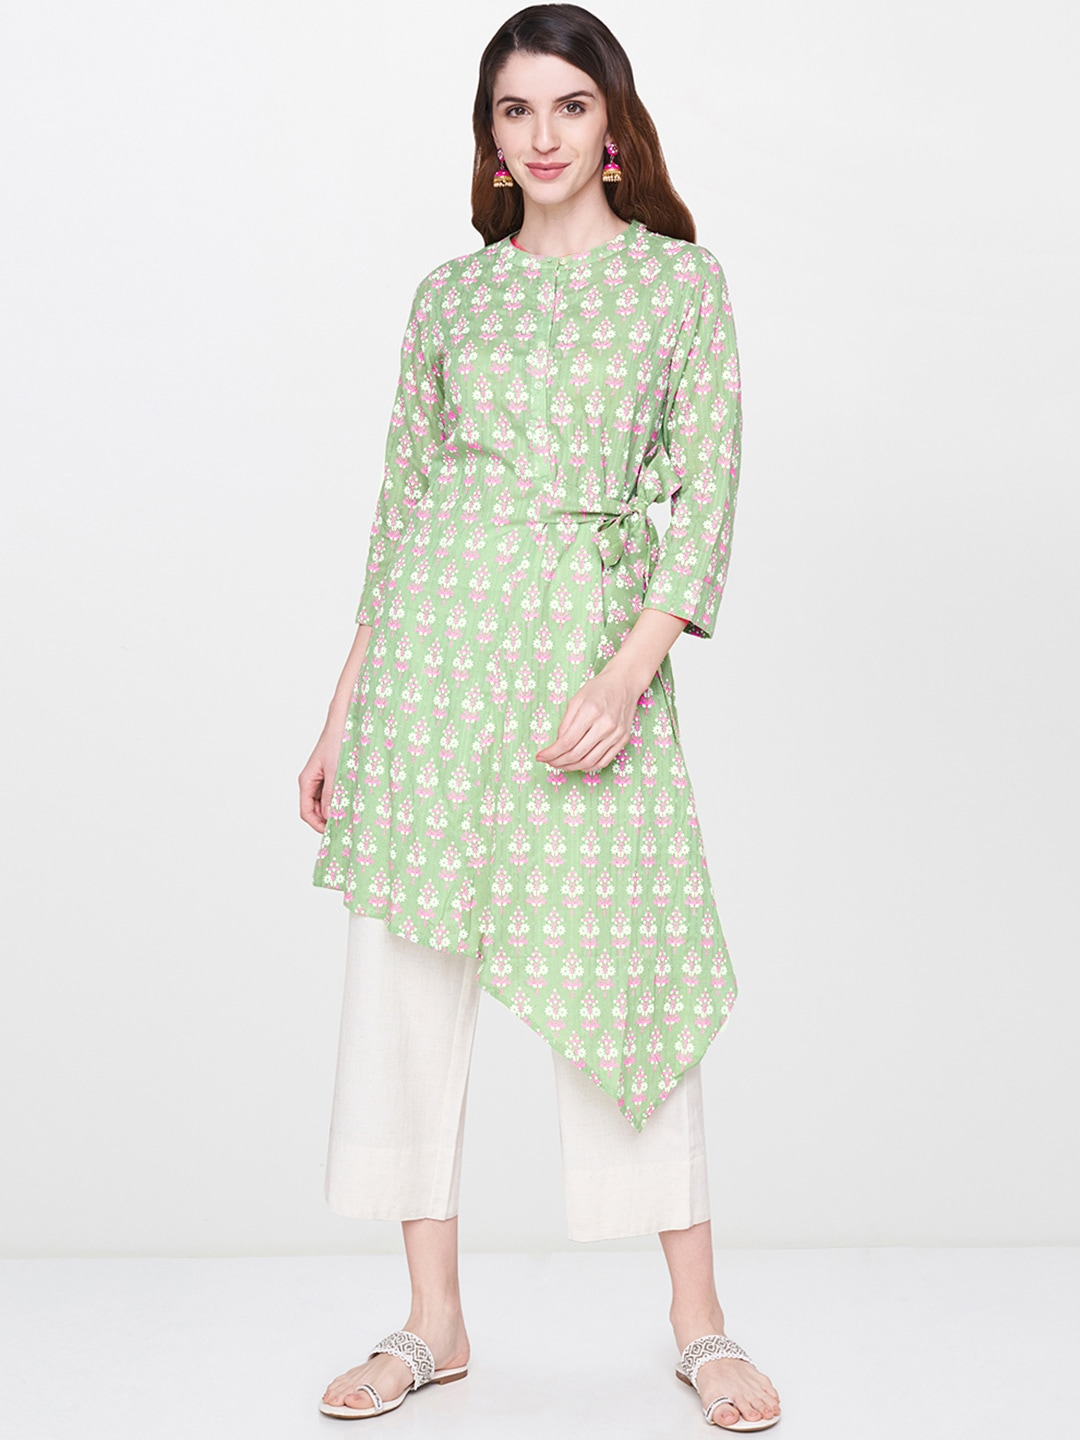 8c8f741db3a Tunics for Women - Buy Tunic Tops For Women Online in India